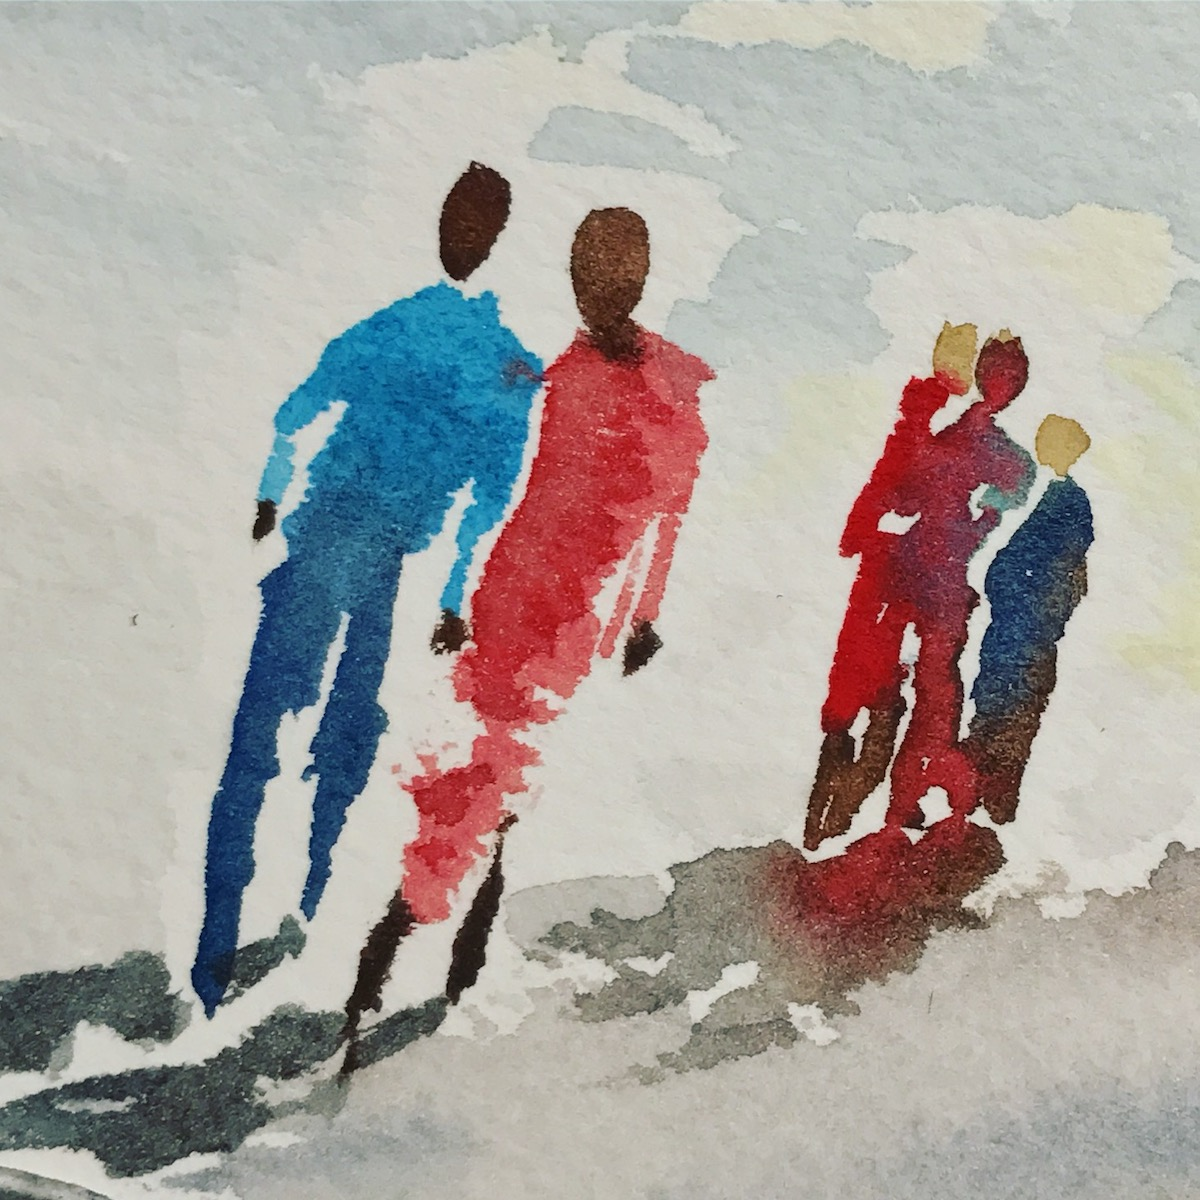 Watercolor exercise - painting a group of people